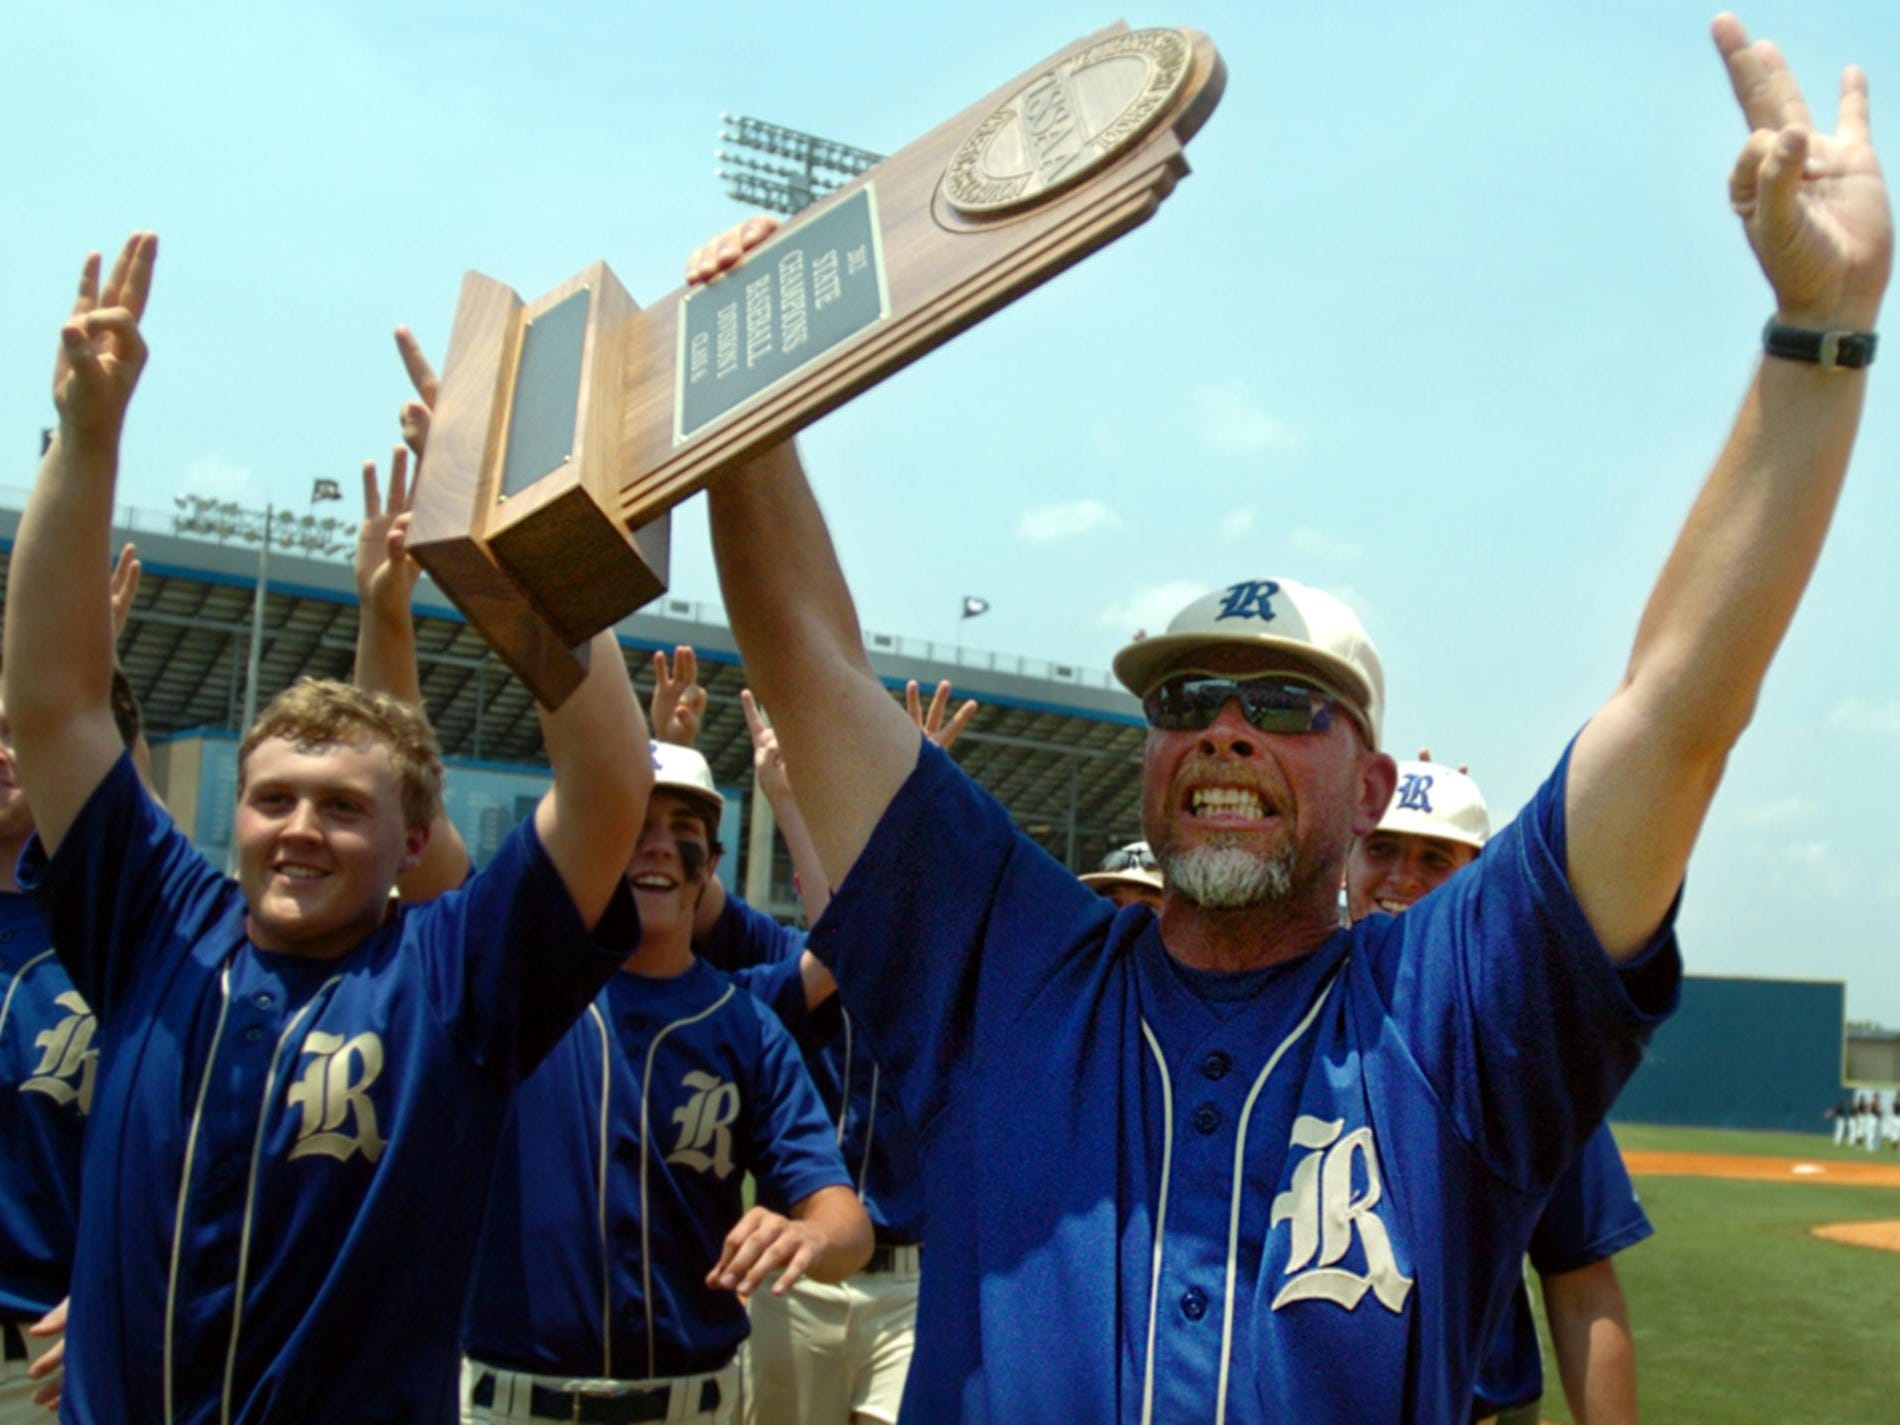 Former Riverside head baseball coach Dusty Rhodes celebrates after leading the Panthers to their third straight state championship in 2012. Rhodes has been hired as an assistant coach at Hardin County.